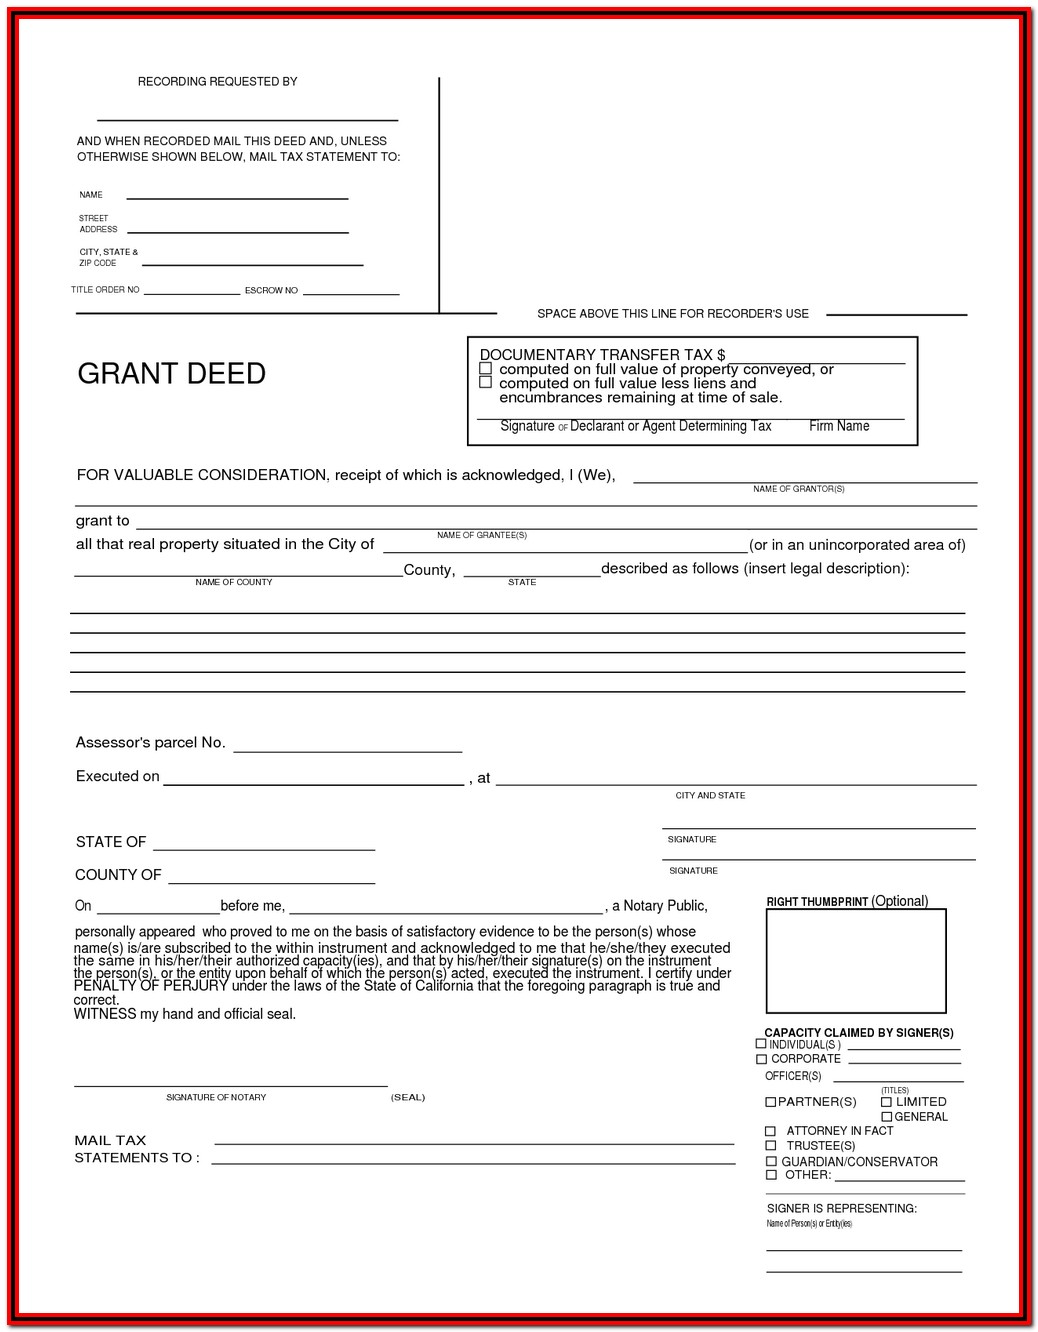 Grant Deed Form California Alameda County